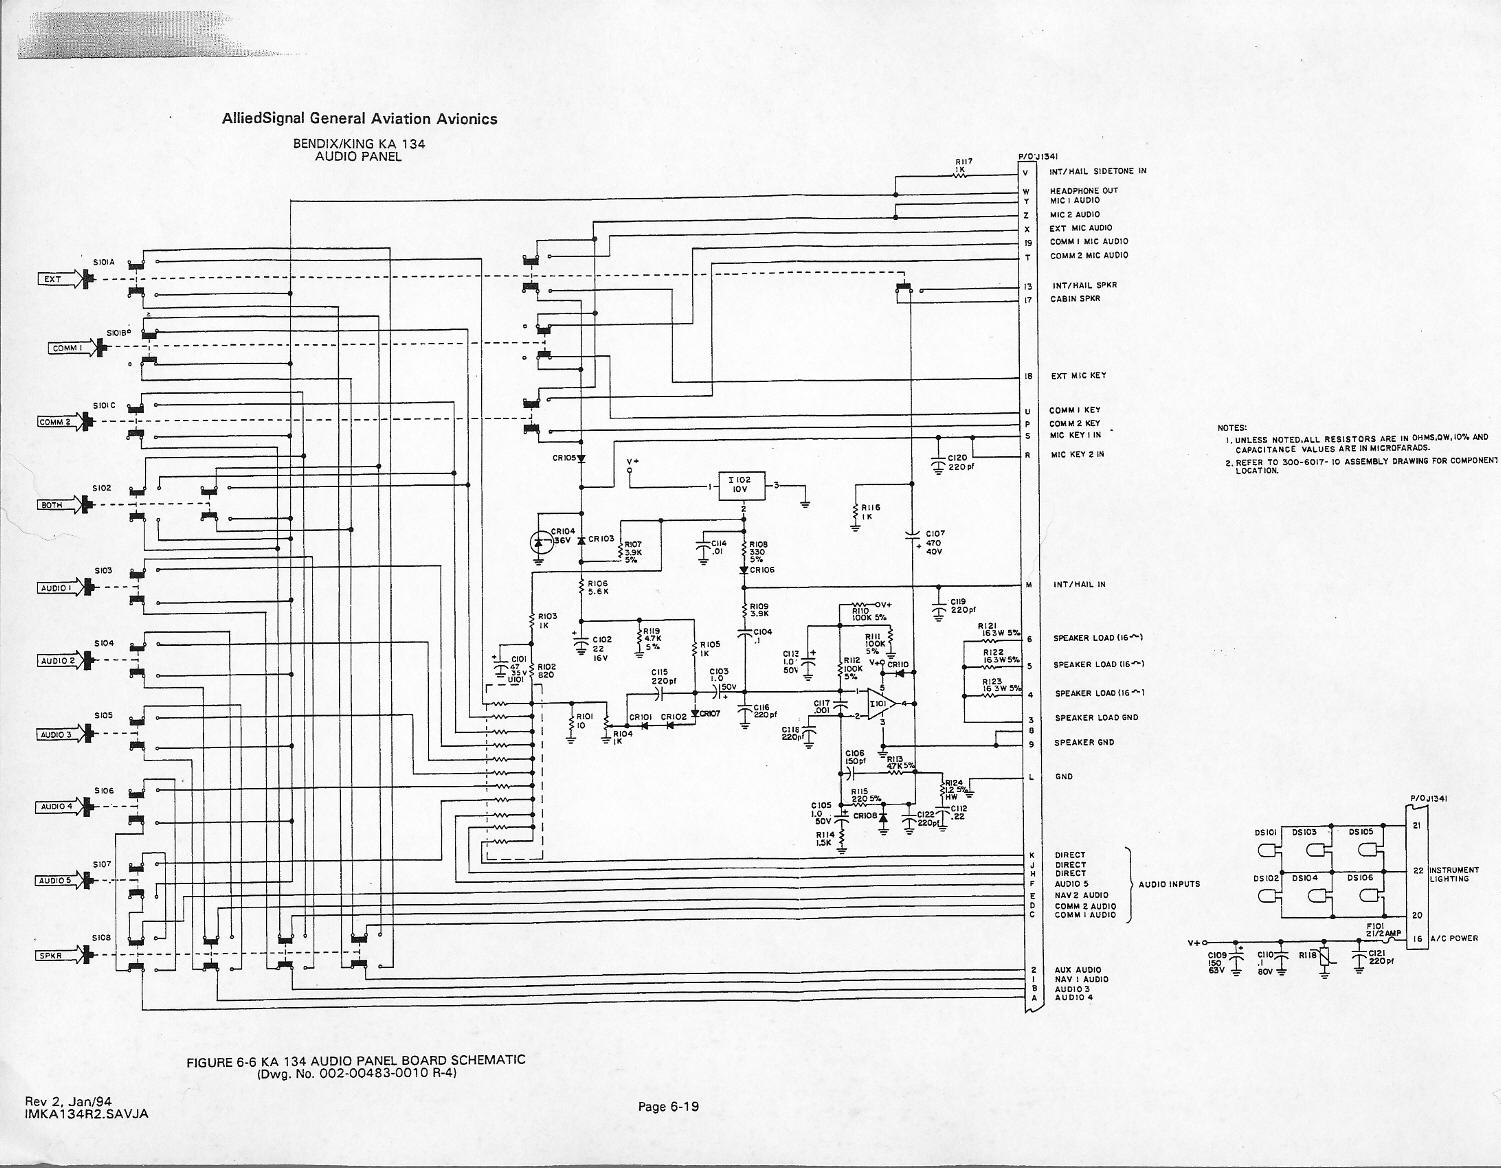 ka134_r4 first flight prep king ka 134 audio panel wiring diagram at nearapp.co